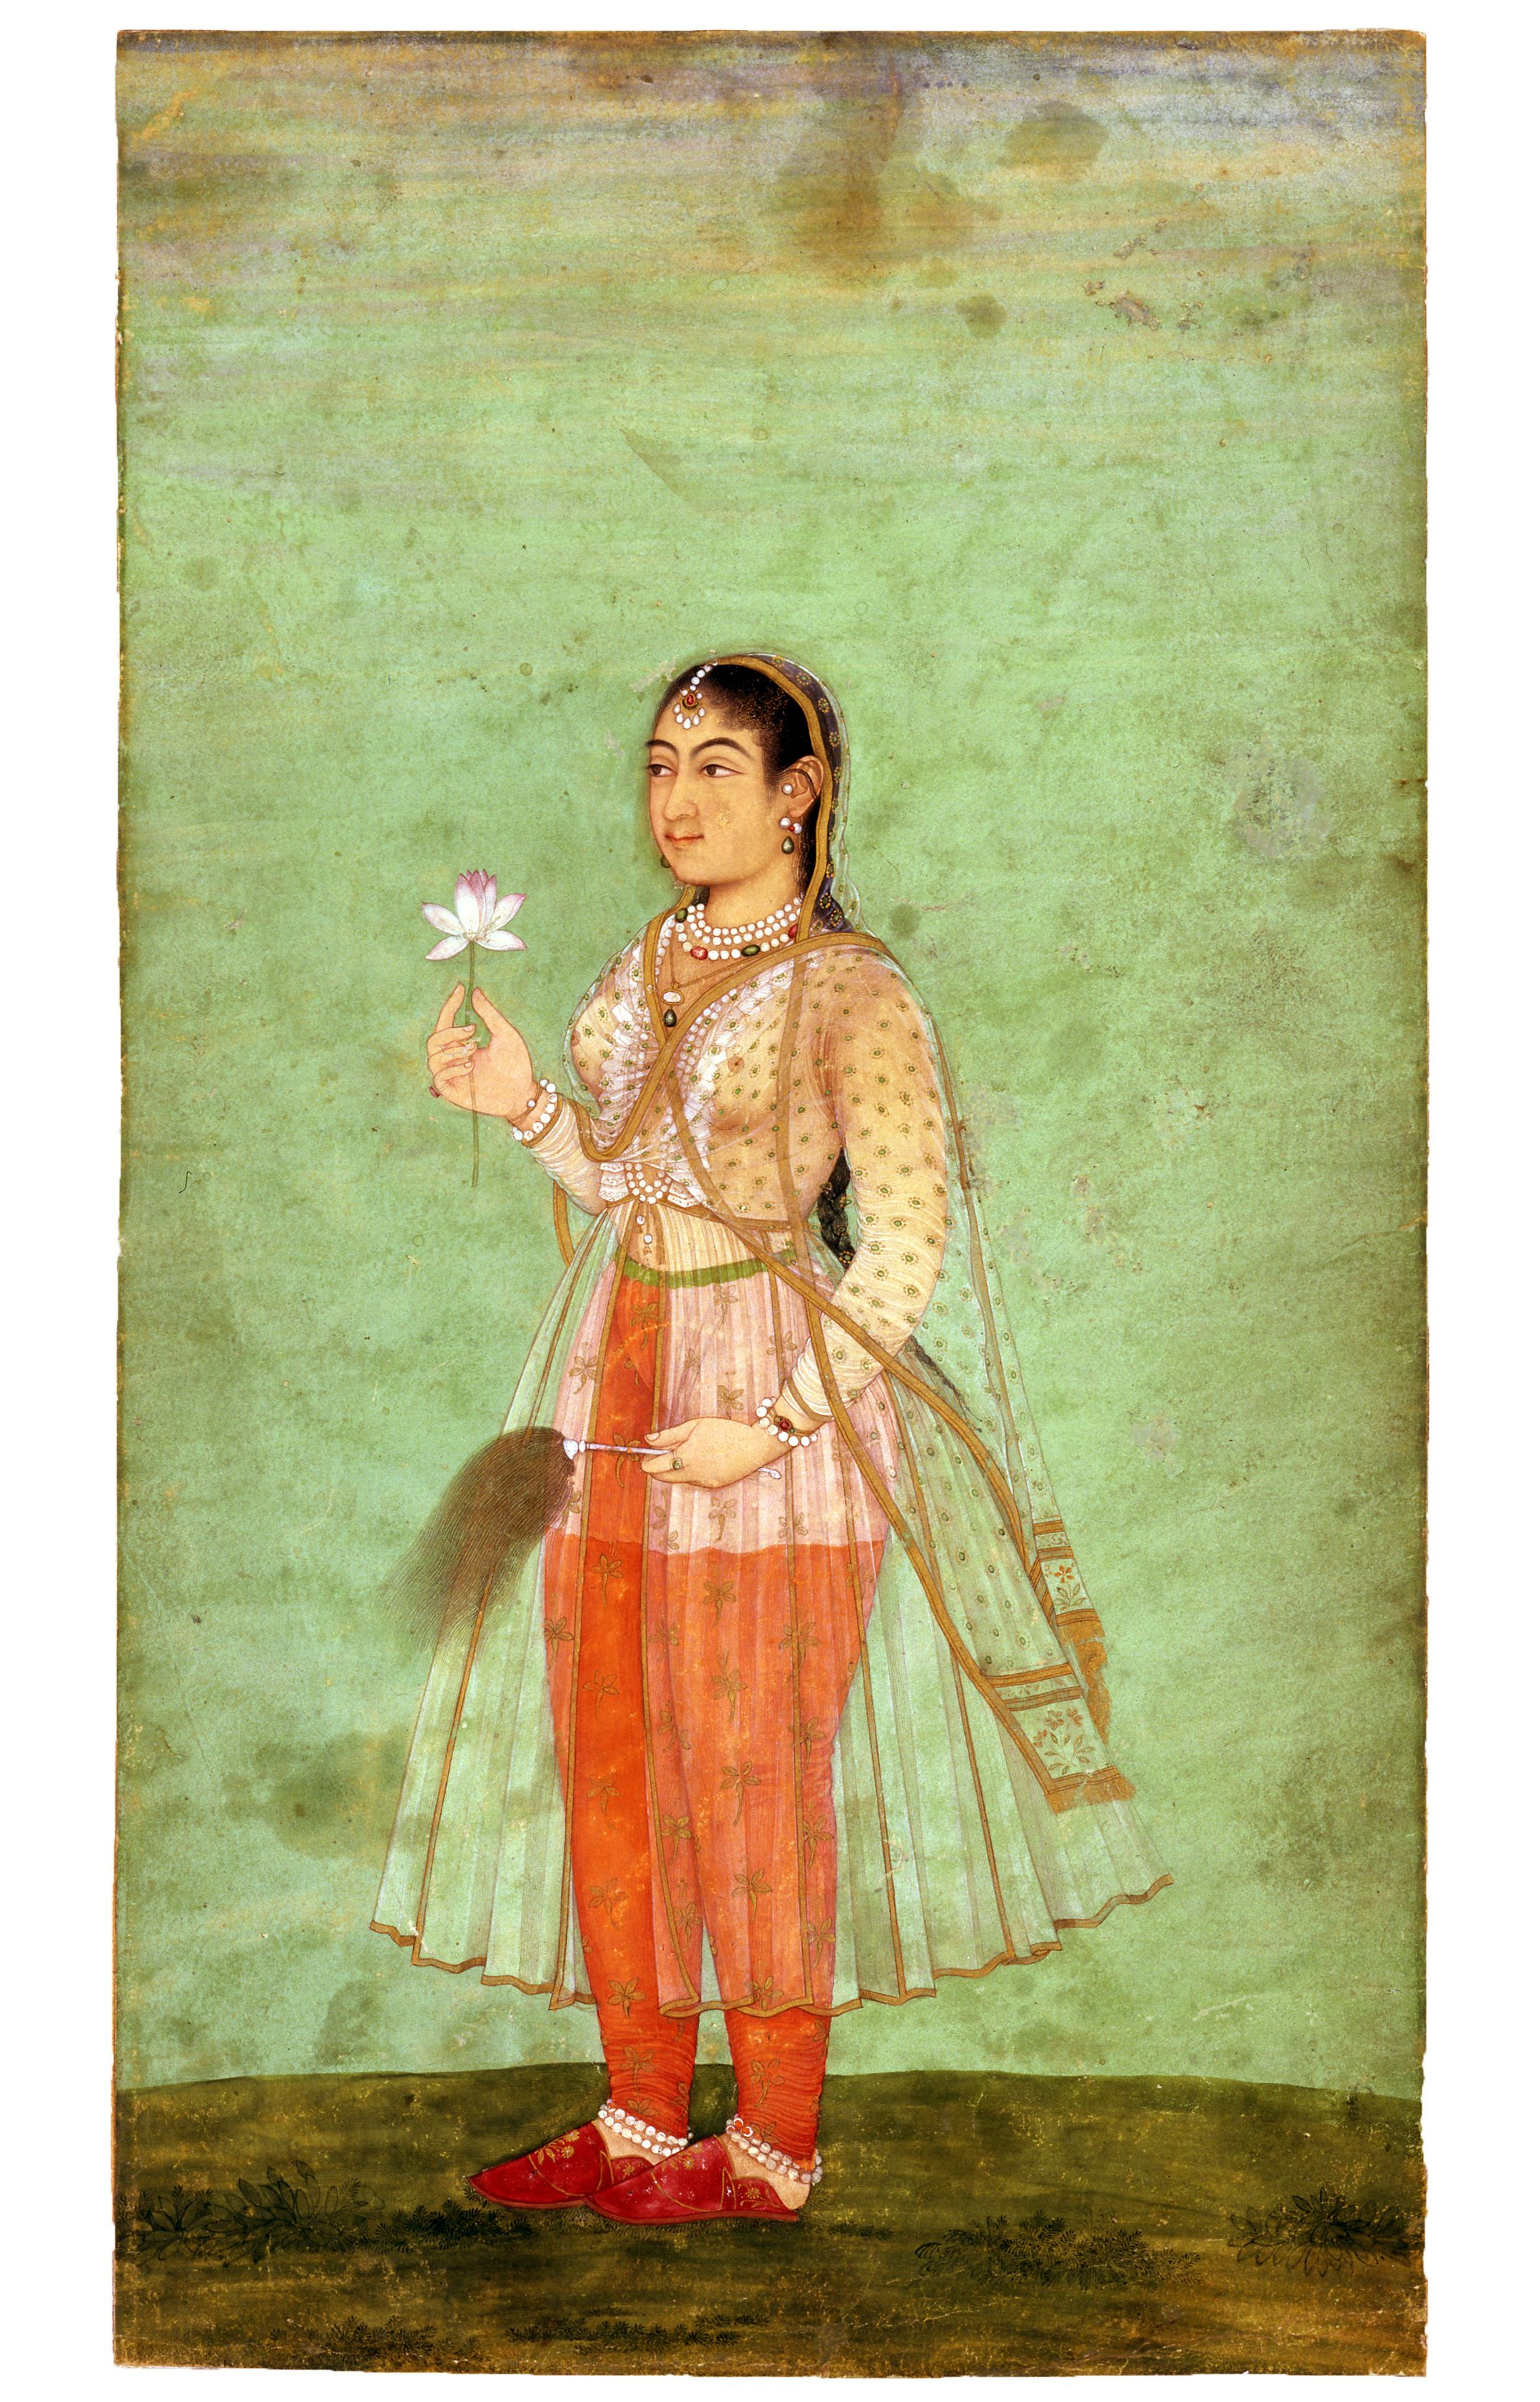 Miniature en kvinde med blomst og fluevifte indien mogul ca a lady with flower and fly whisk india mughal 1630 so tempting to wear this get up to an sca event sciox Choice Image